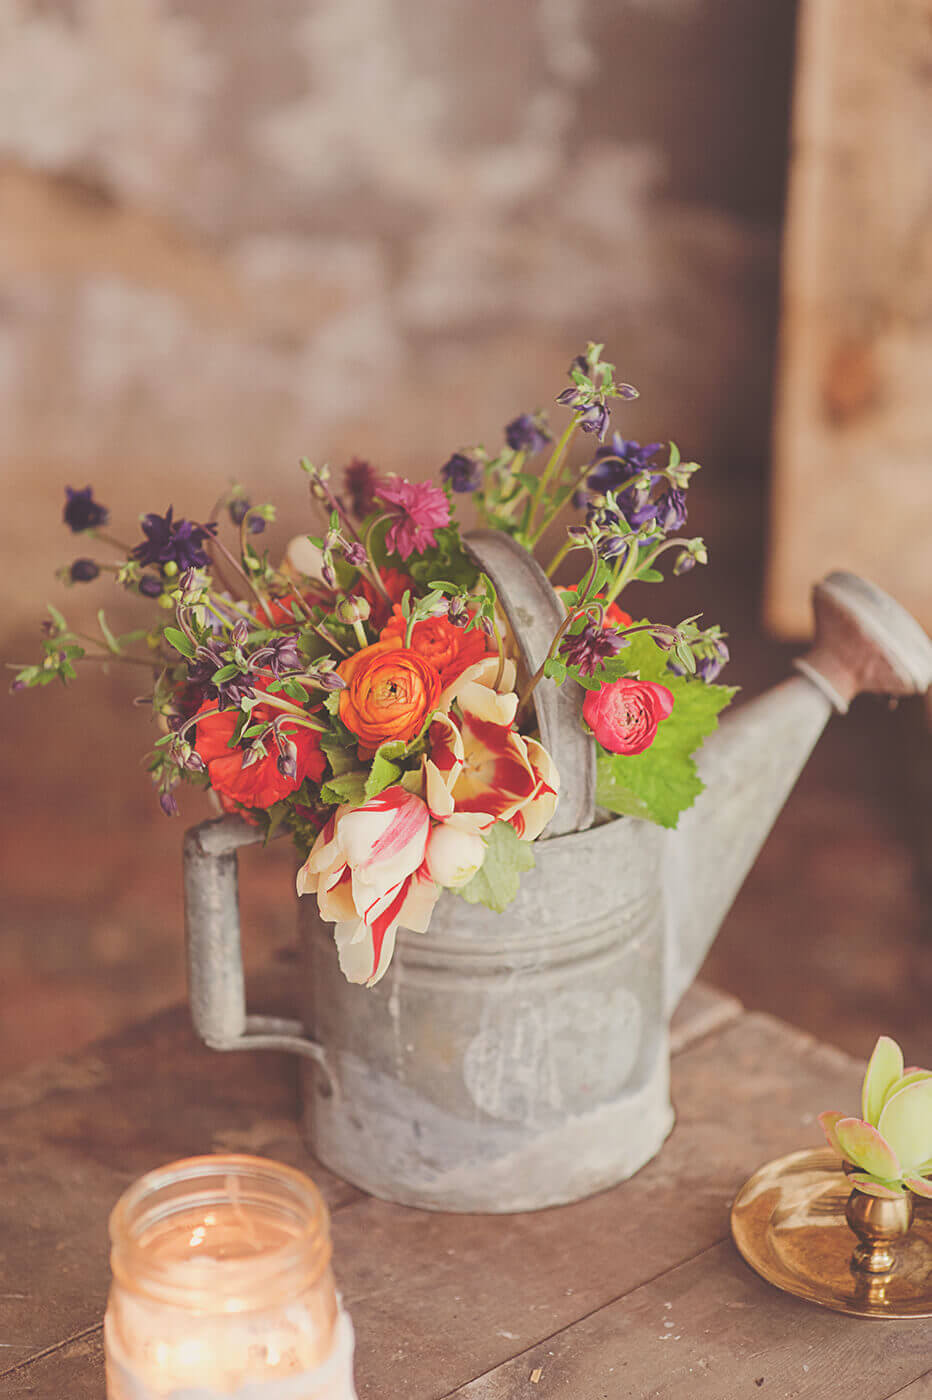 Vintage Garden Decor Ideas: Rustic Metal Watering Can Planter